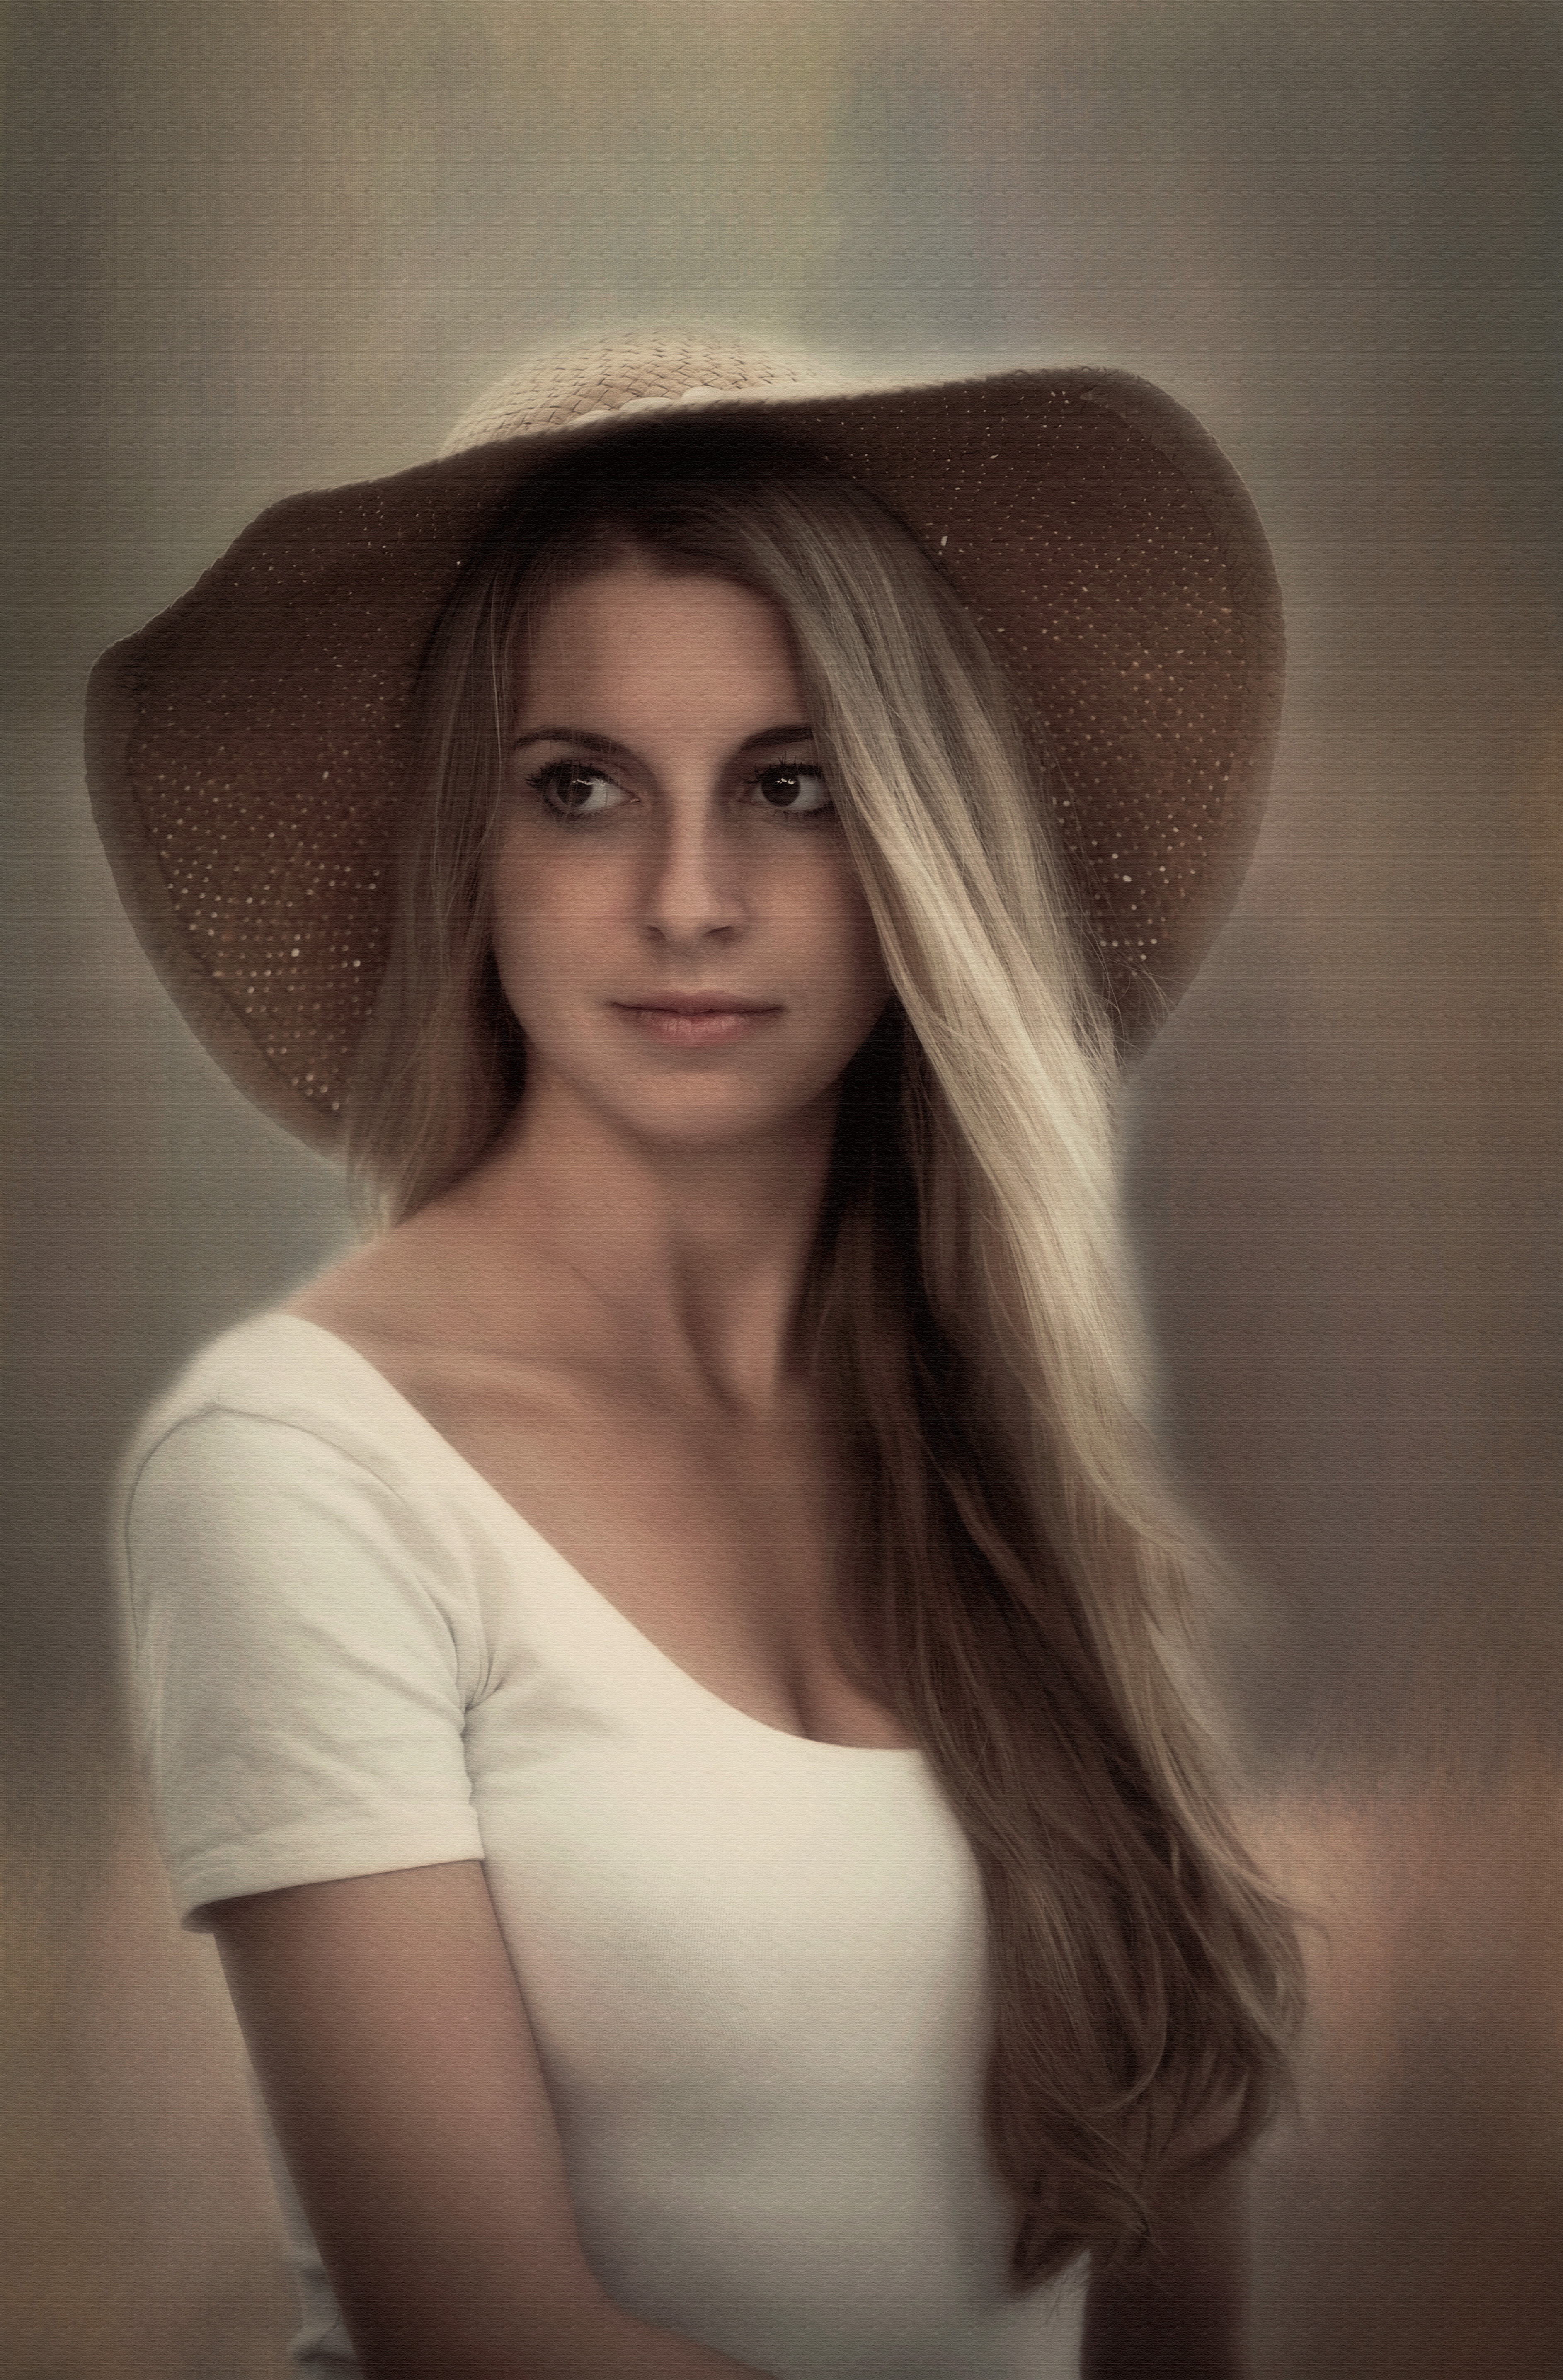 Blonde Girl in Straw Hat